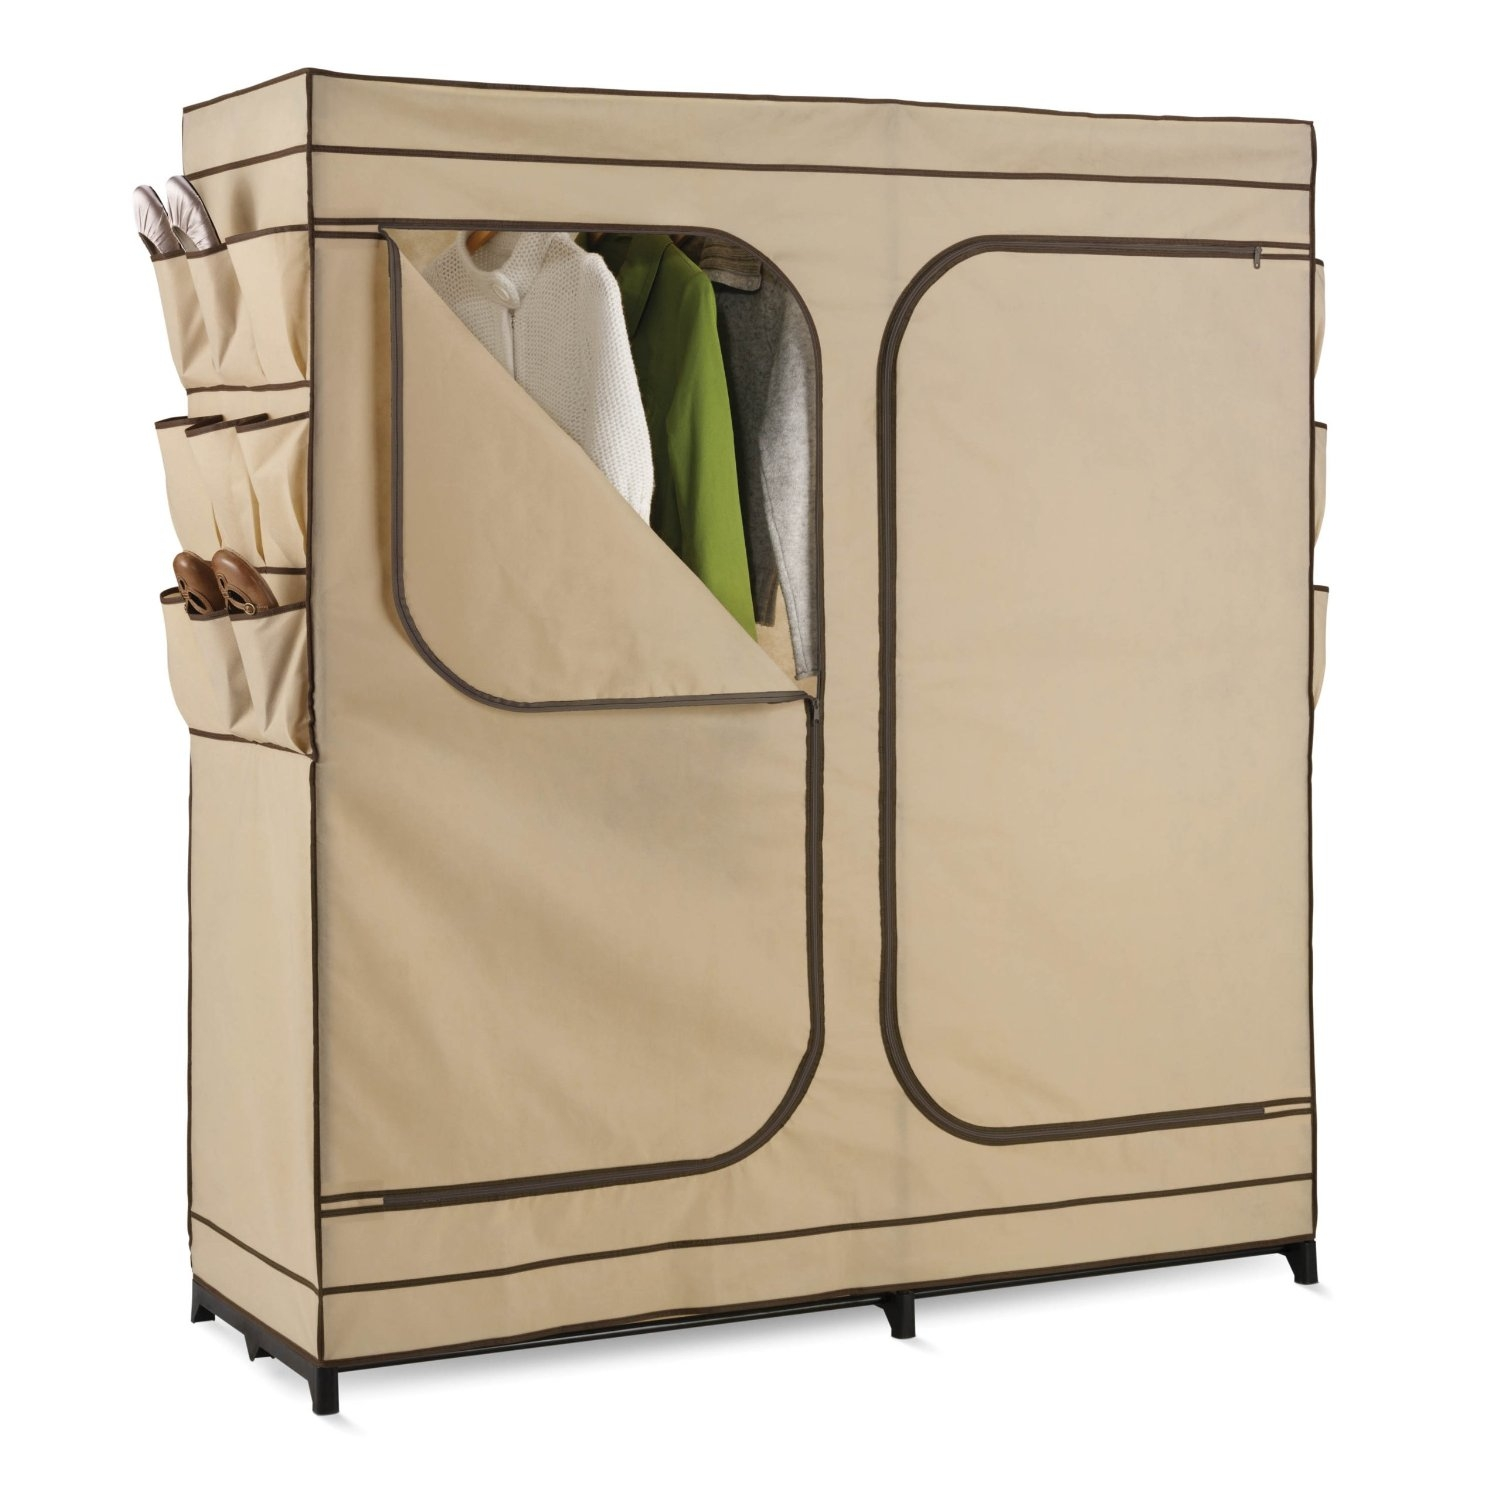 The granddaddy of all economy storage closets, this Khaki Double Door Wardrobe Portable Clothes Closet with Shoe Storage measures a generous 60-inches wide and works great for extra hanging space or seasonal storage. The high-capacity steel rod will hold all of your dresses, shirts, pants and other items giving you an excuse to shop for more! The breathable, lightweight fabric completely surrounds your garments, protecting them from dust and debris, and offers the convenience of two D-Style zipper doors for easy access. Integrated 9-pocket exterior storage is perfect for sandals and accessories.